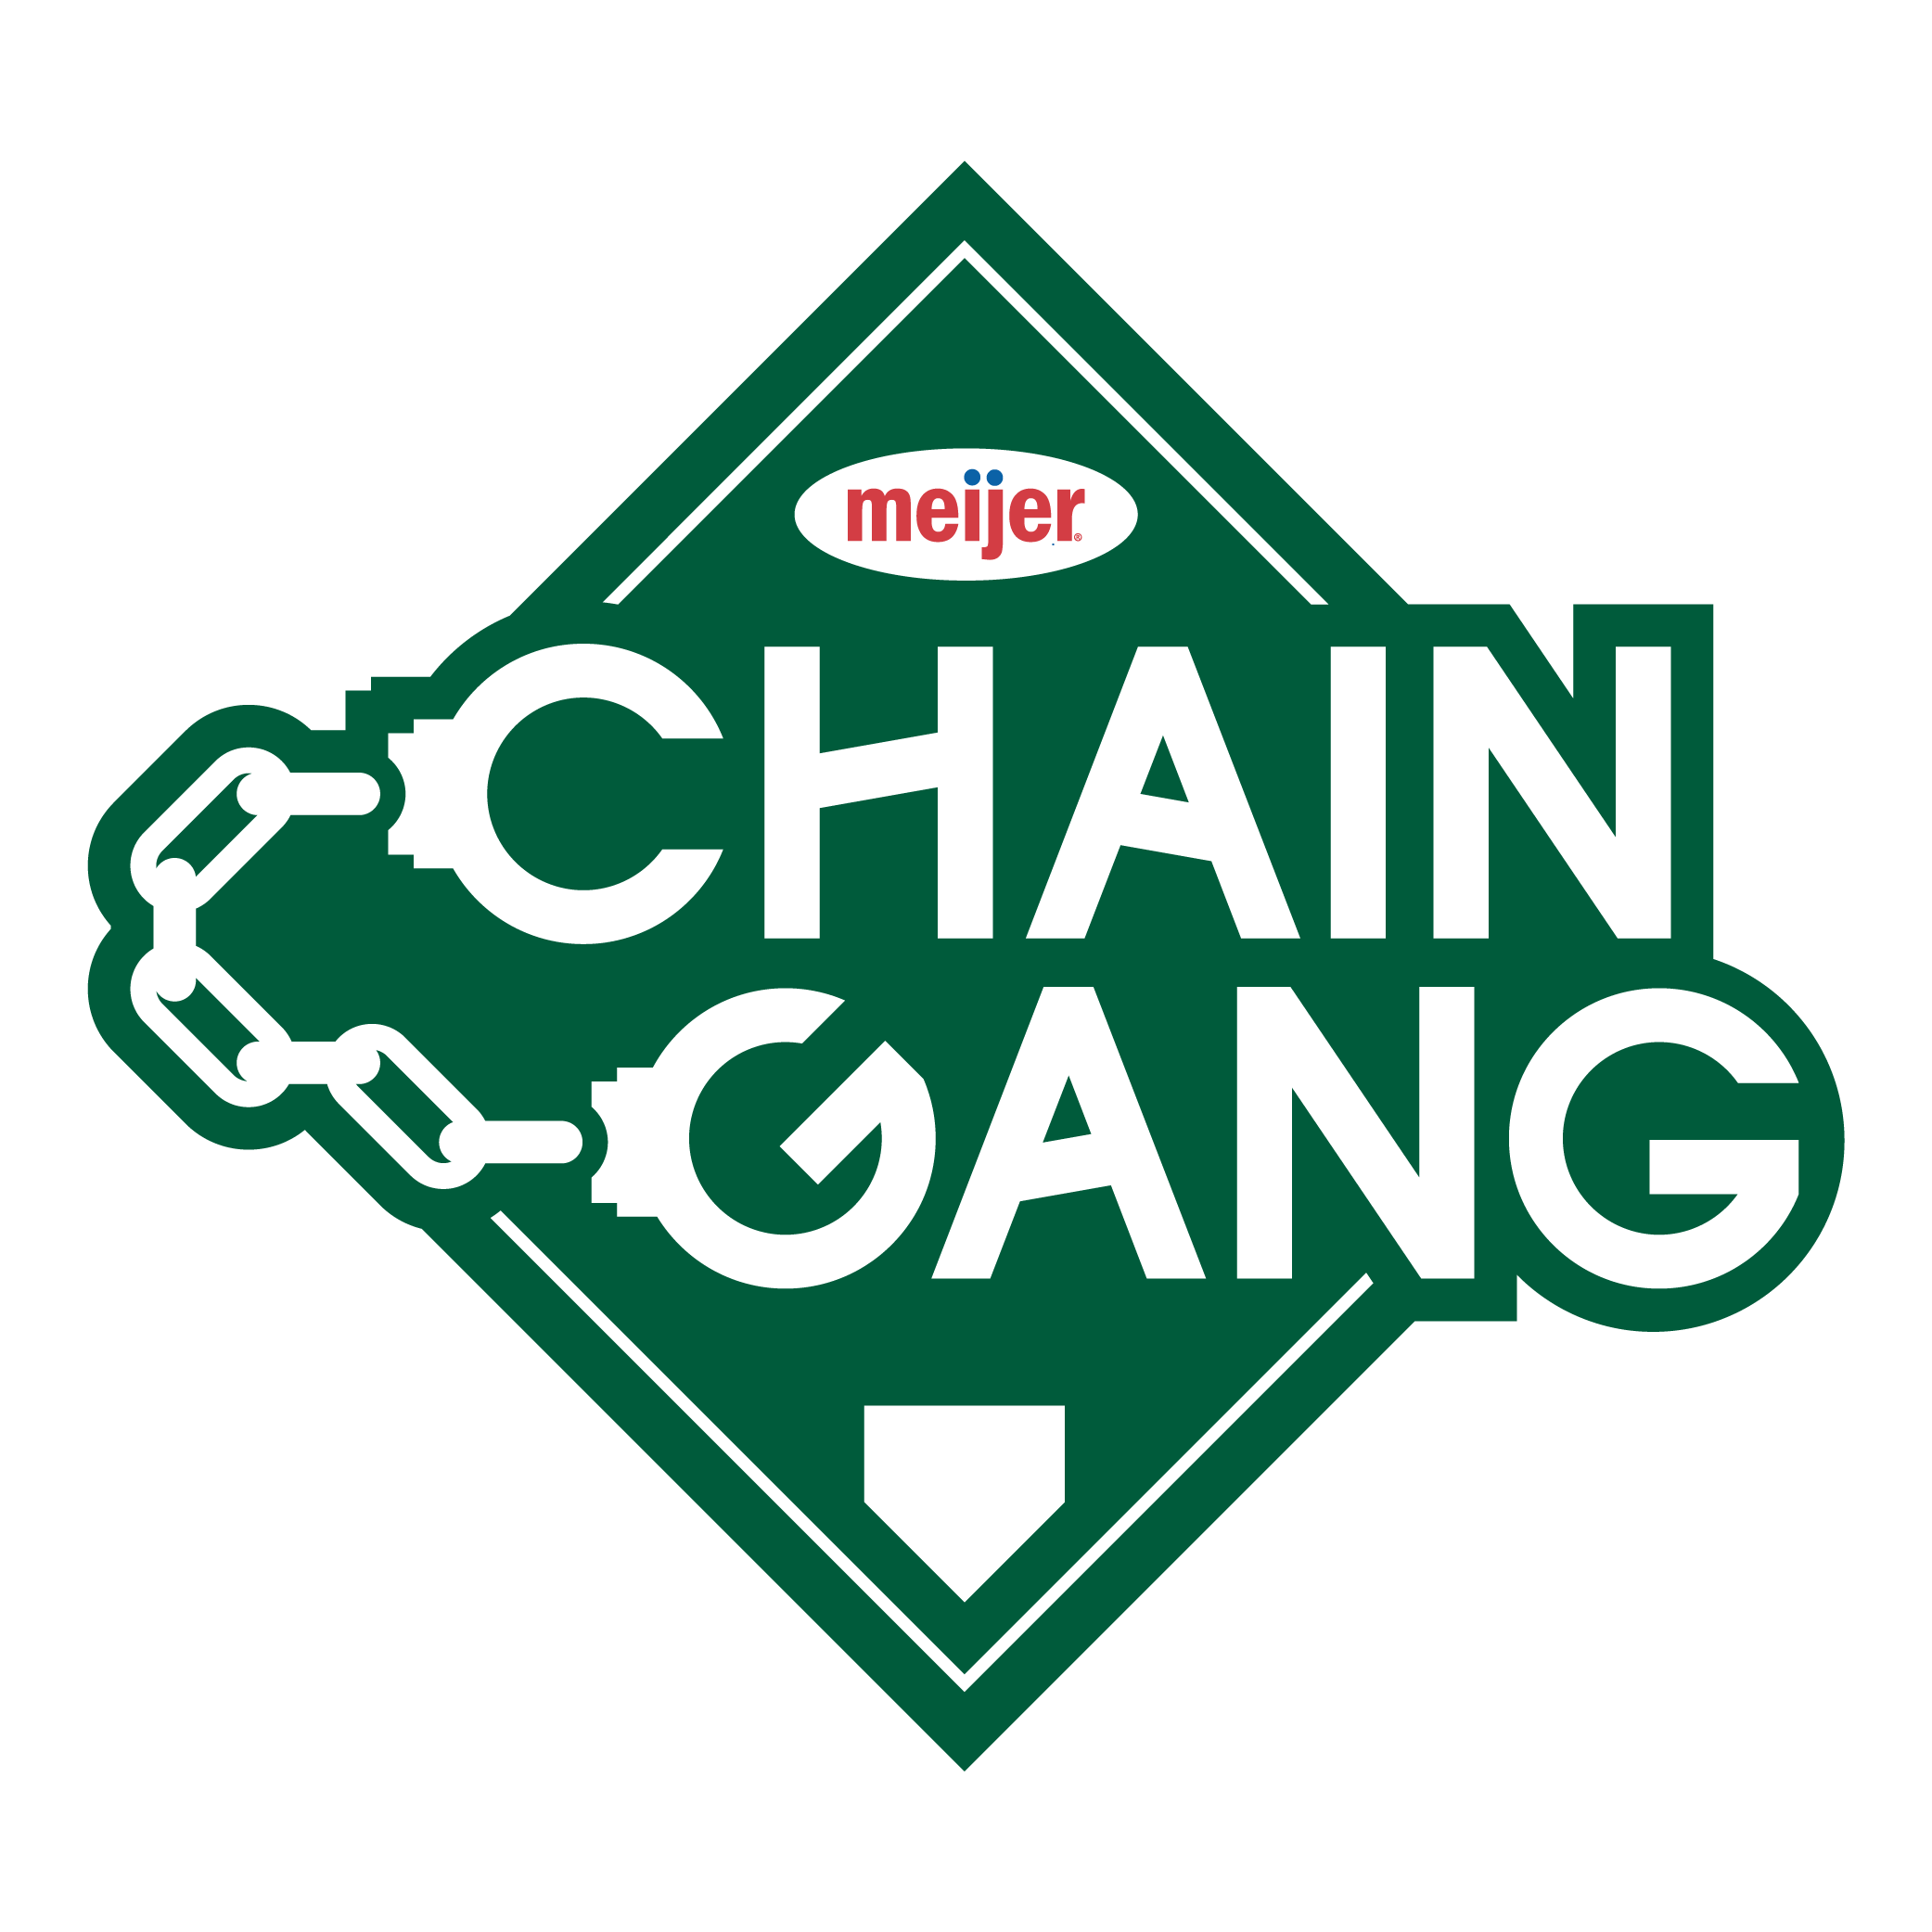 Chain Gang logo created for the team's promotional team to wearing during games and at events.